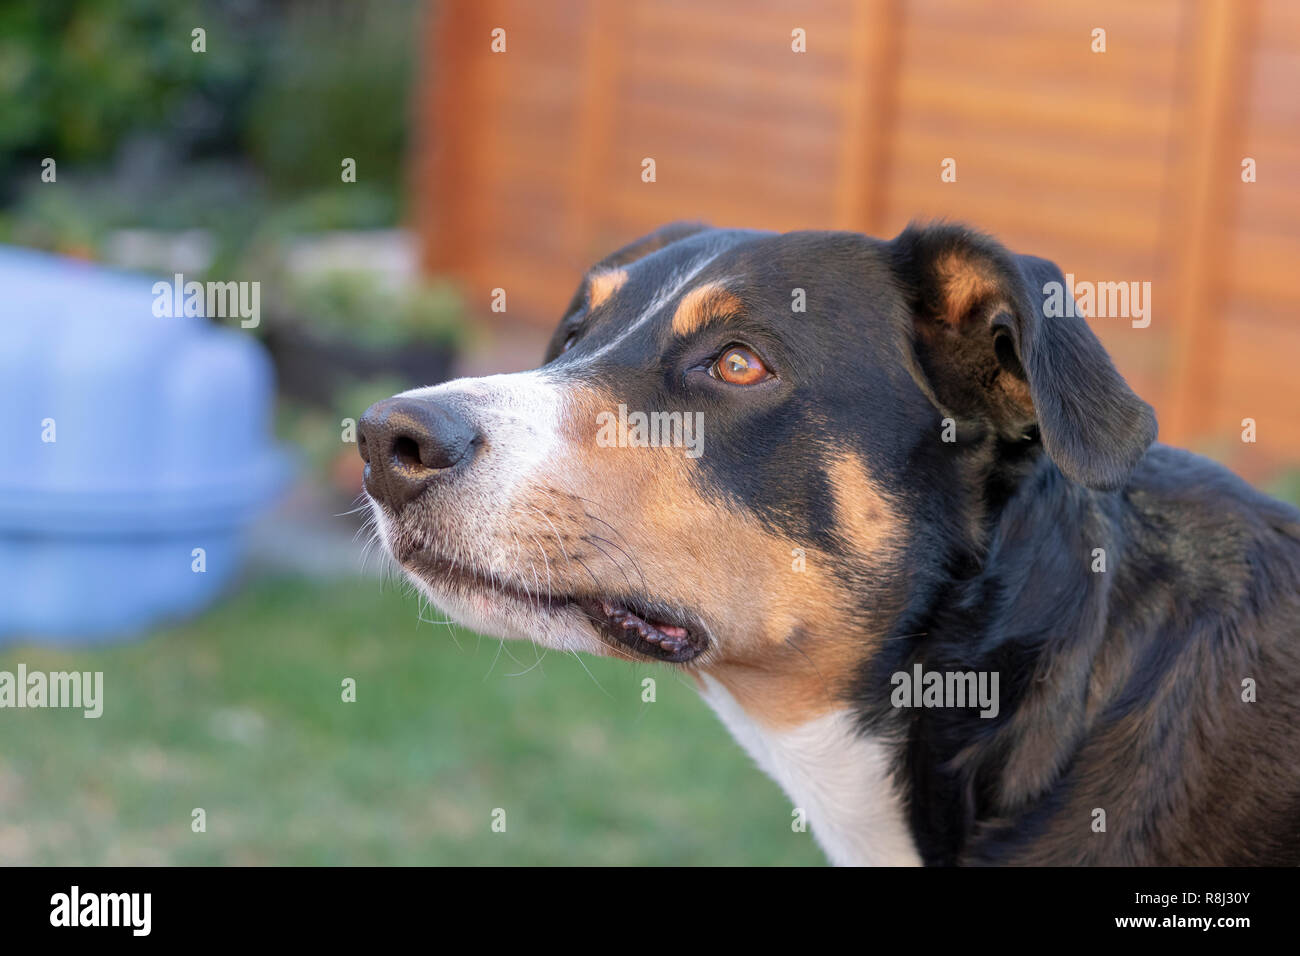 Appenzeller mountain dog posing outside - Stock Image